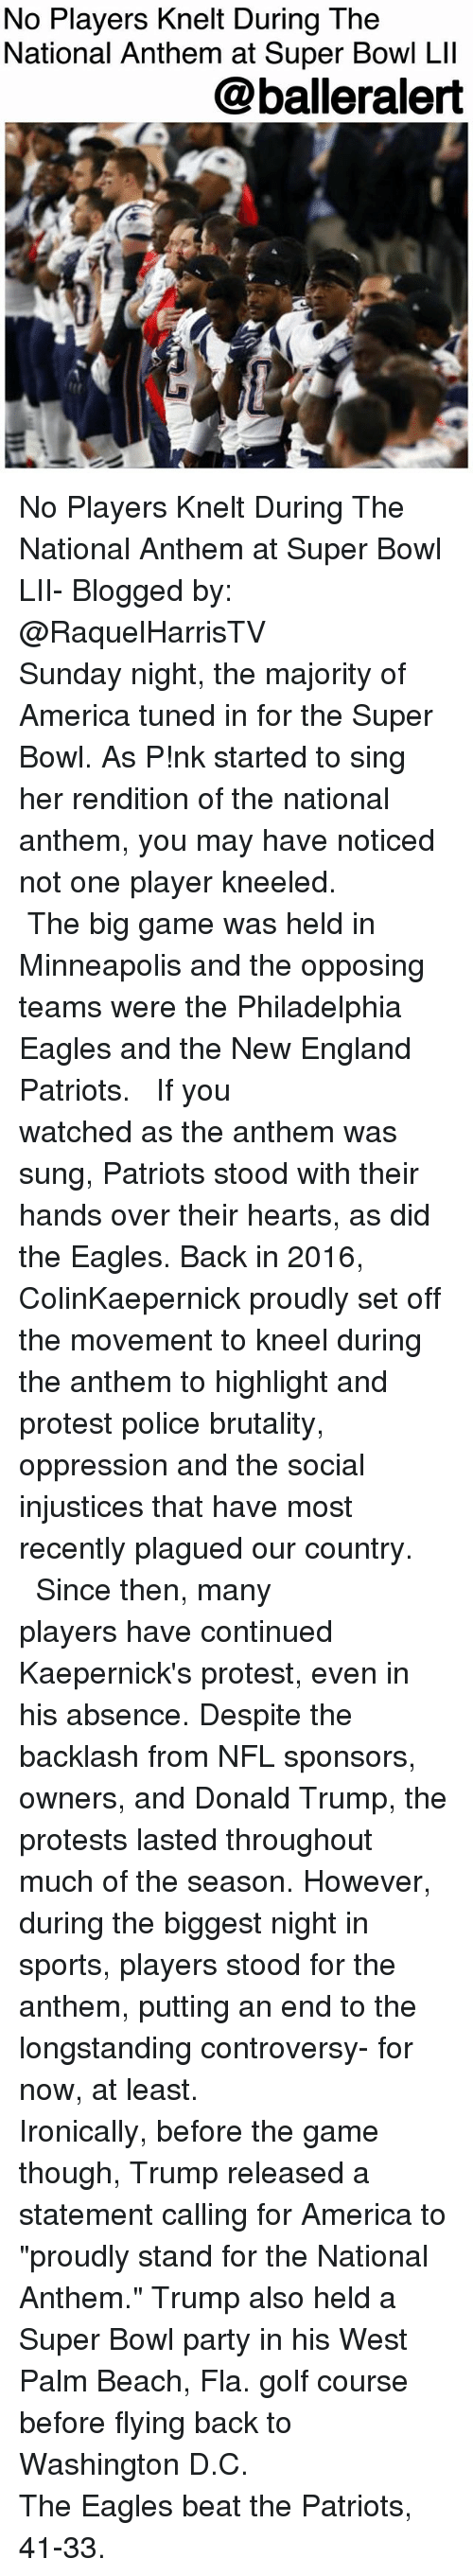 """Philadelphia Eagles: No Players Knelt During The  National Anthem at Super Bowl Lll  @balleralert No Players Knelt During The National Anthem at Super Bowl LII- Blogged by: @RaquelHarrisTV ⠀⠀⠀⠀⠀⠀⠀ ⠀⠀⠀⠀⠀⠀⠀ Sunday night, the majority of America tuned in for the Super Bowl. As P!nk started to sing her rendition of the national anthem, you may have noticed not one player kneeled. ⠀⠀⠀⠀⠀⠀⠀⠀⠀ ⠀⠀⠀⠀⠀⠀⠀⠀⠀ The big game was held in Minneapolis and the opposing teams were the Philadelphia Eagles and the New England Patriots. ⠀⠀⠀⠀⠀⠀⠀⠀⠀ ⠀⠀⠀⠀⠀⠀⠀⠀⠀ If you watched as the anthem was sung, Patriots stood with their hands over their hearts, as did the Eagles. Back in 2016, ColinKaepernick proudly set off the movement to kneel during the anthem to highlight and protest police brutality, oppression and the social injustices that have most recently plagued our country. ⠀⠀⠀⠀⠀⠀⠀⠀⠀ ⠀⠀⠀⠀⠀⠀⠀⠀⠀ Since then, many players have continued Kaepernick's protest, even in his absence. Despite the backlash from NFL sponsors, owners, and Donald Trump, the protests lasted throughout much of the season. However, during the biggest night in sports, players stood for the anthem, putting an end to the longstanding controversy- for now, at least. ⠀⠀⠀⠀⠀⠀⠀ ⠀⠀⠀⠀⠀⠀⠀ Ironically, before the game though, Trump released a statement calling for America to """"proudly stand for the National Anthem."""" Trump also held a Super Bowl party in his West Palm Beach, Fla. golf course before flying back to Washington D.C. ⠀⠀⠀⠀⠀⠀⠀⠀⠀ ⠀⠀⠀⠀⠀⠀⠀⠀⠀ The Eagles beat the Patriots, 41-33."""